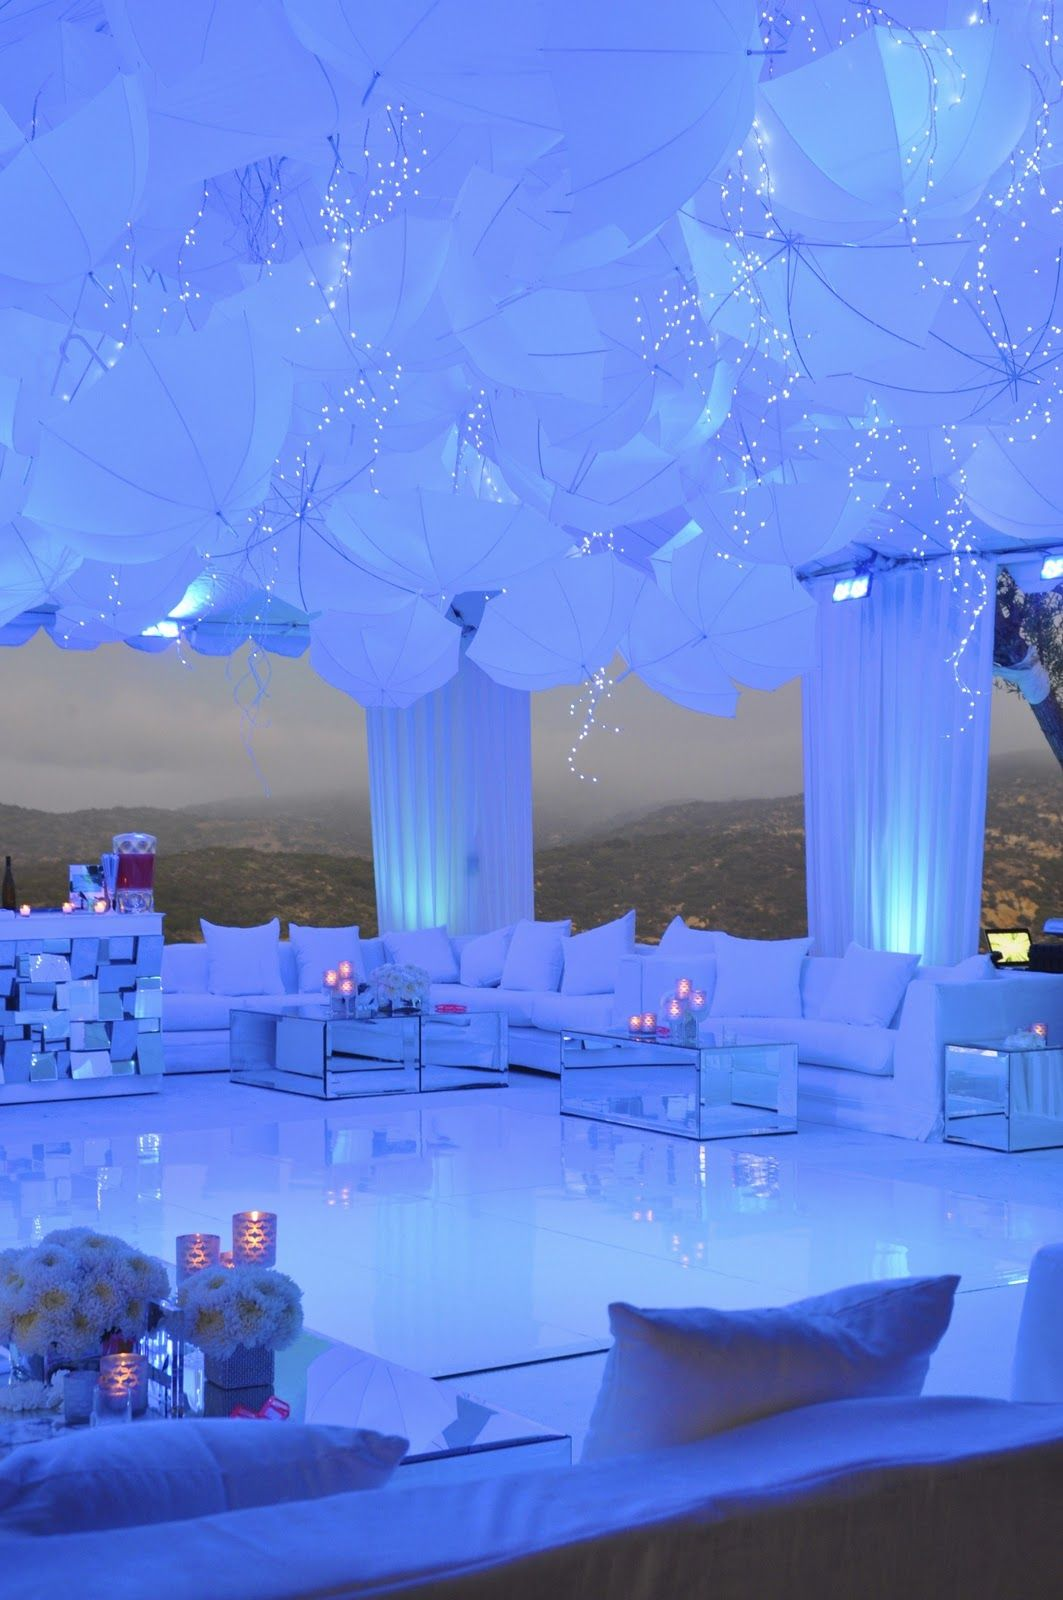 Cocktail Party Theme Ideas Part - 28: White Decor With LED Flooring And Lighting Make A Huge Statement And Can  Transform Any Space Into Any Color From Chic, Sophisticated Cocktail Parties  To ...